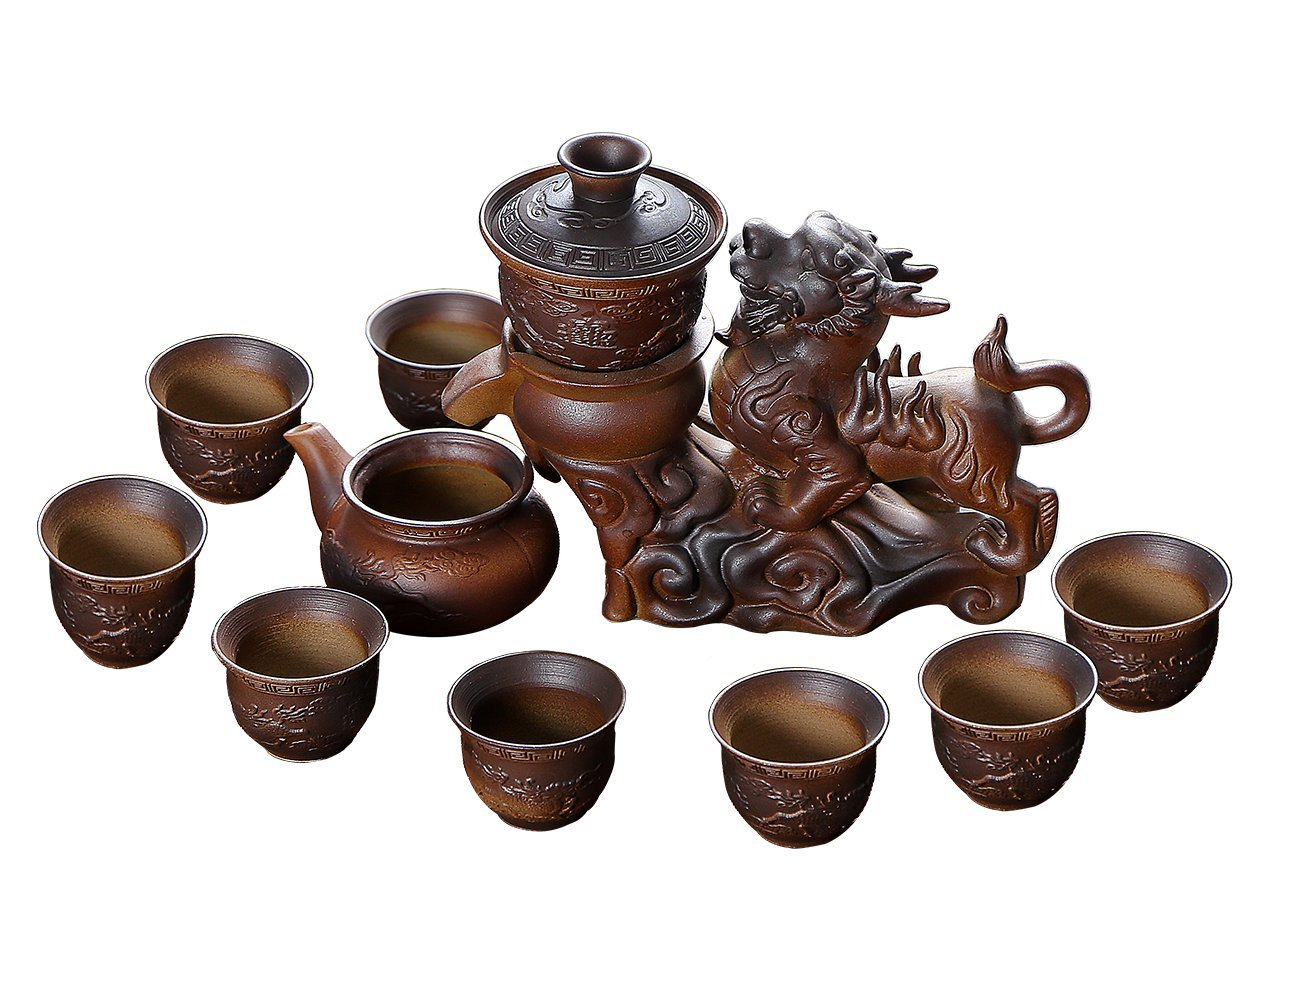 Chinese Hot Tea Service Set Handmade Automatic Kylin Design Firewood Crude Pottery Kongfu Teapot W/ 8 Teacup Clay Gift Set for Adults Parents Tea Lovers Business Friend Wedding Christmas Decor by Ufine (Image #1)